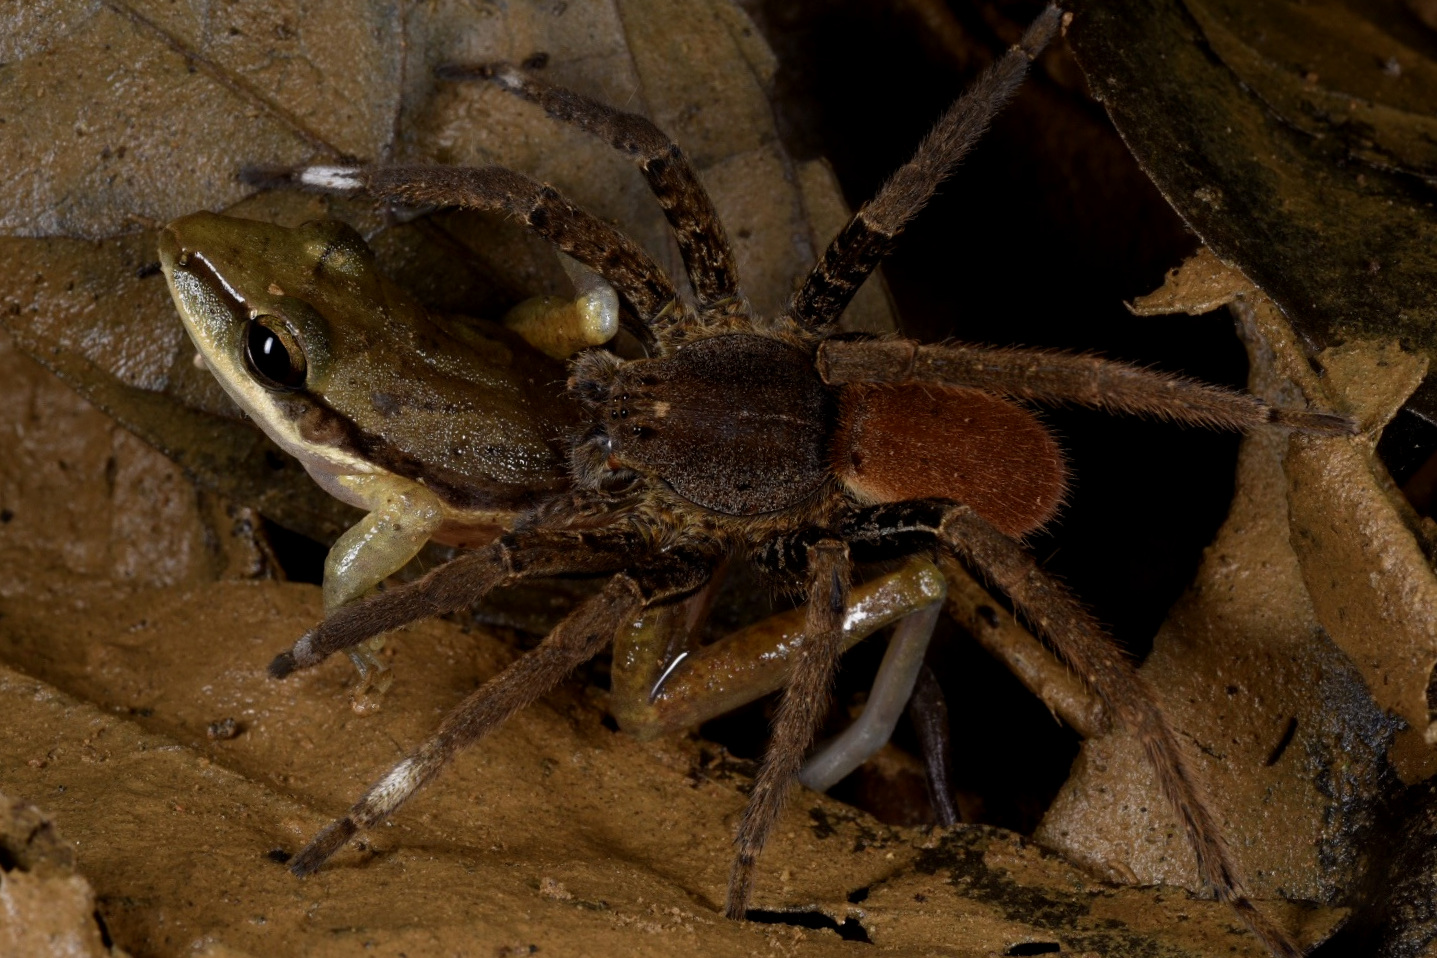 A terrestrial wandering spider ( Ctenus sp .) attempting to overpower a juvenile robber frog ( Craugaster cf. talamancae ) in western Panamanian lowland rainforest. In the recent past, Fred Muller has witnessed and documented a number of predation events by wolf and wandering spiders on several different frog families at different locations in Central America. Image: F. Muller.